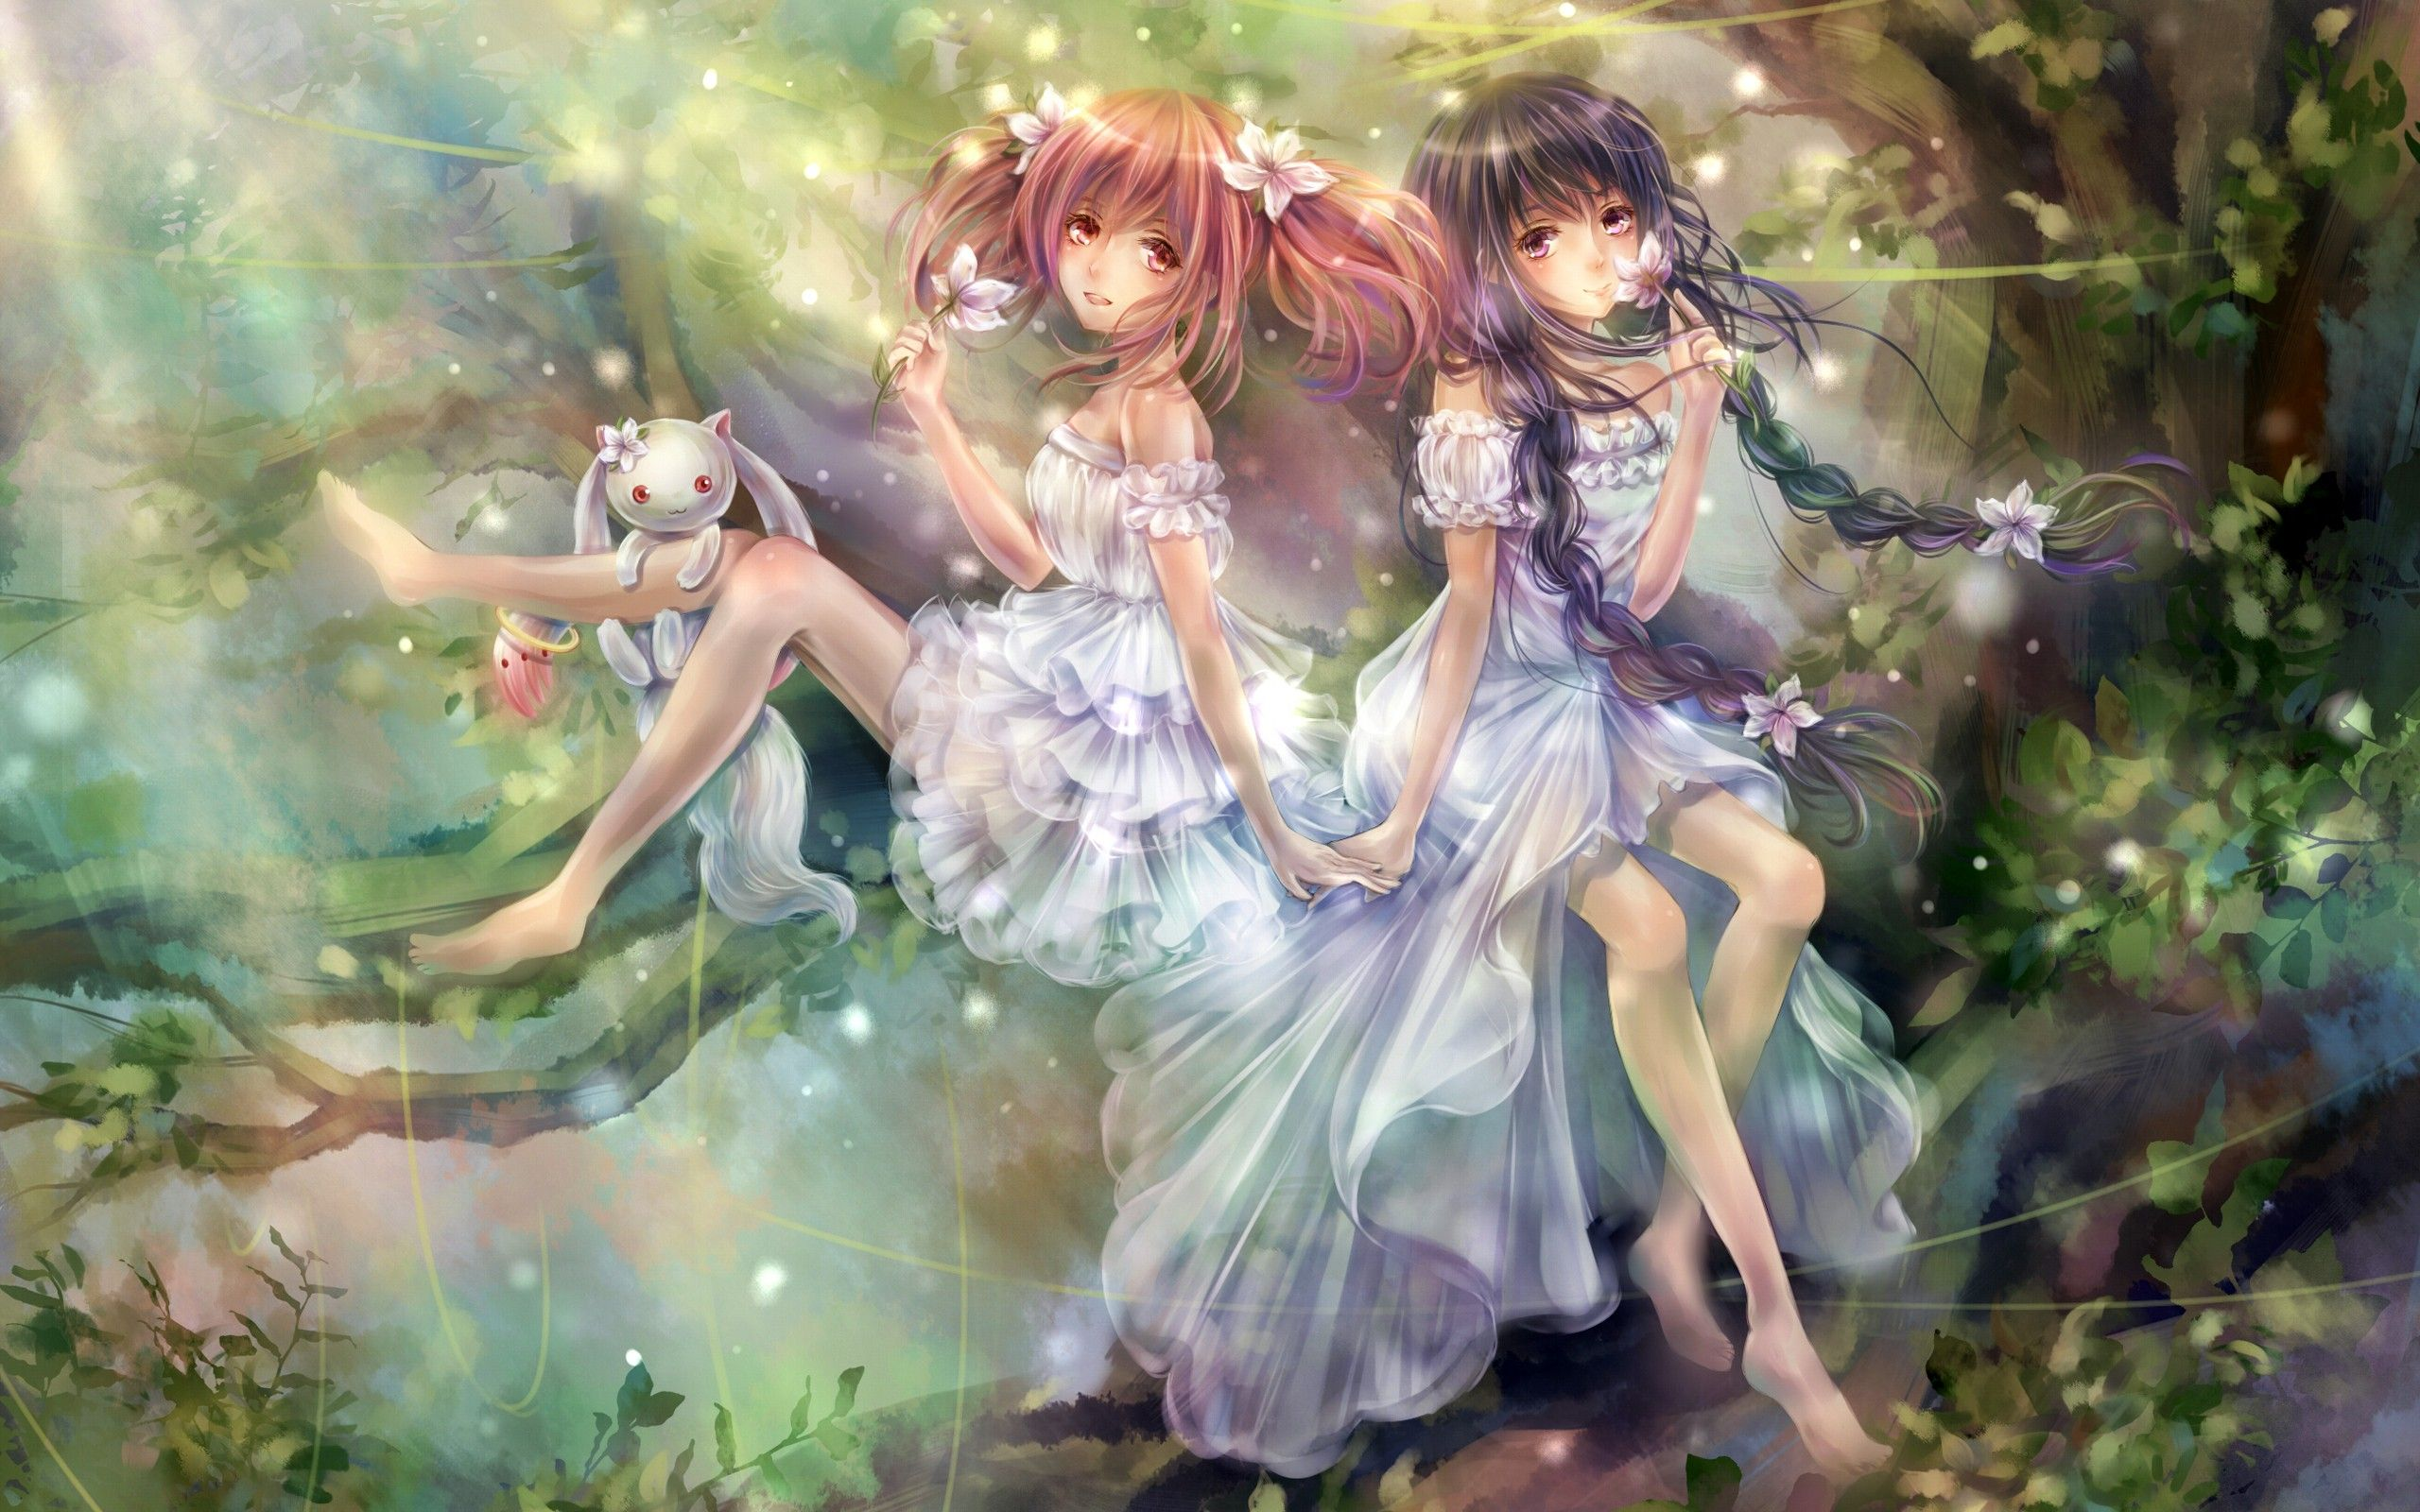 Fantasy Art Magic Anime Girls HD Wallpaper | MathsRabbit